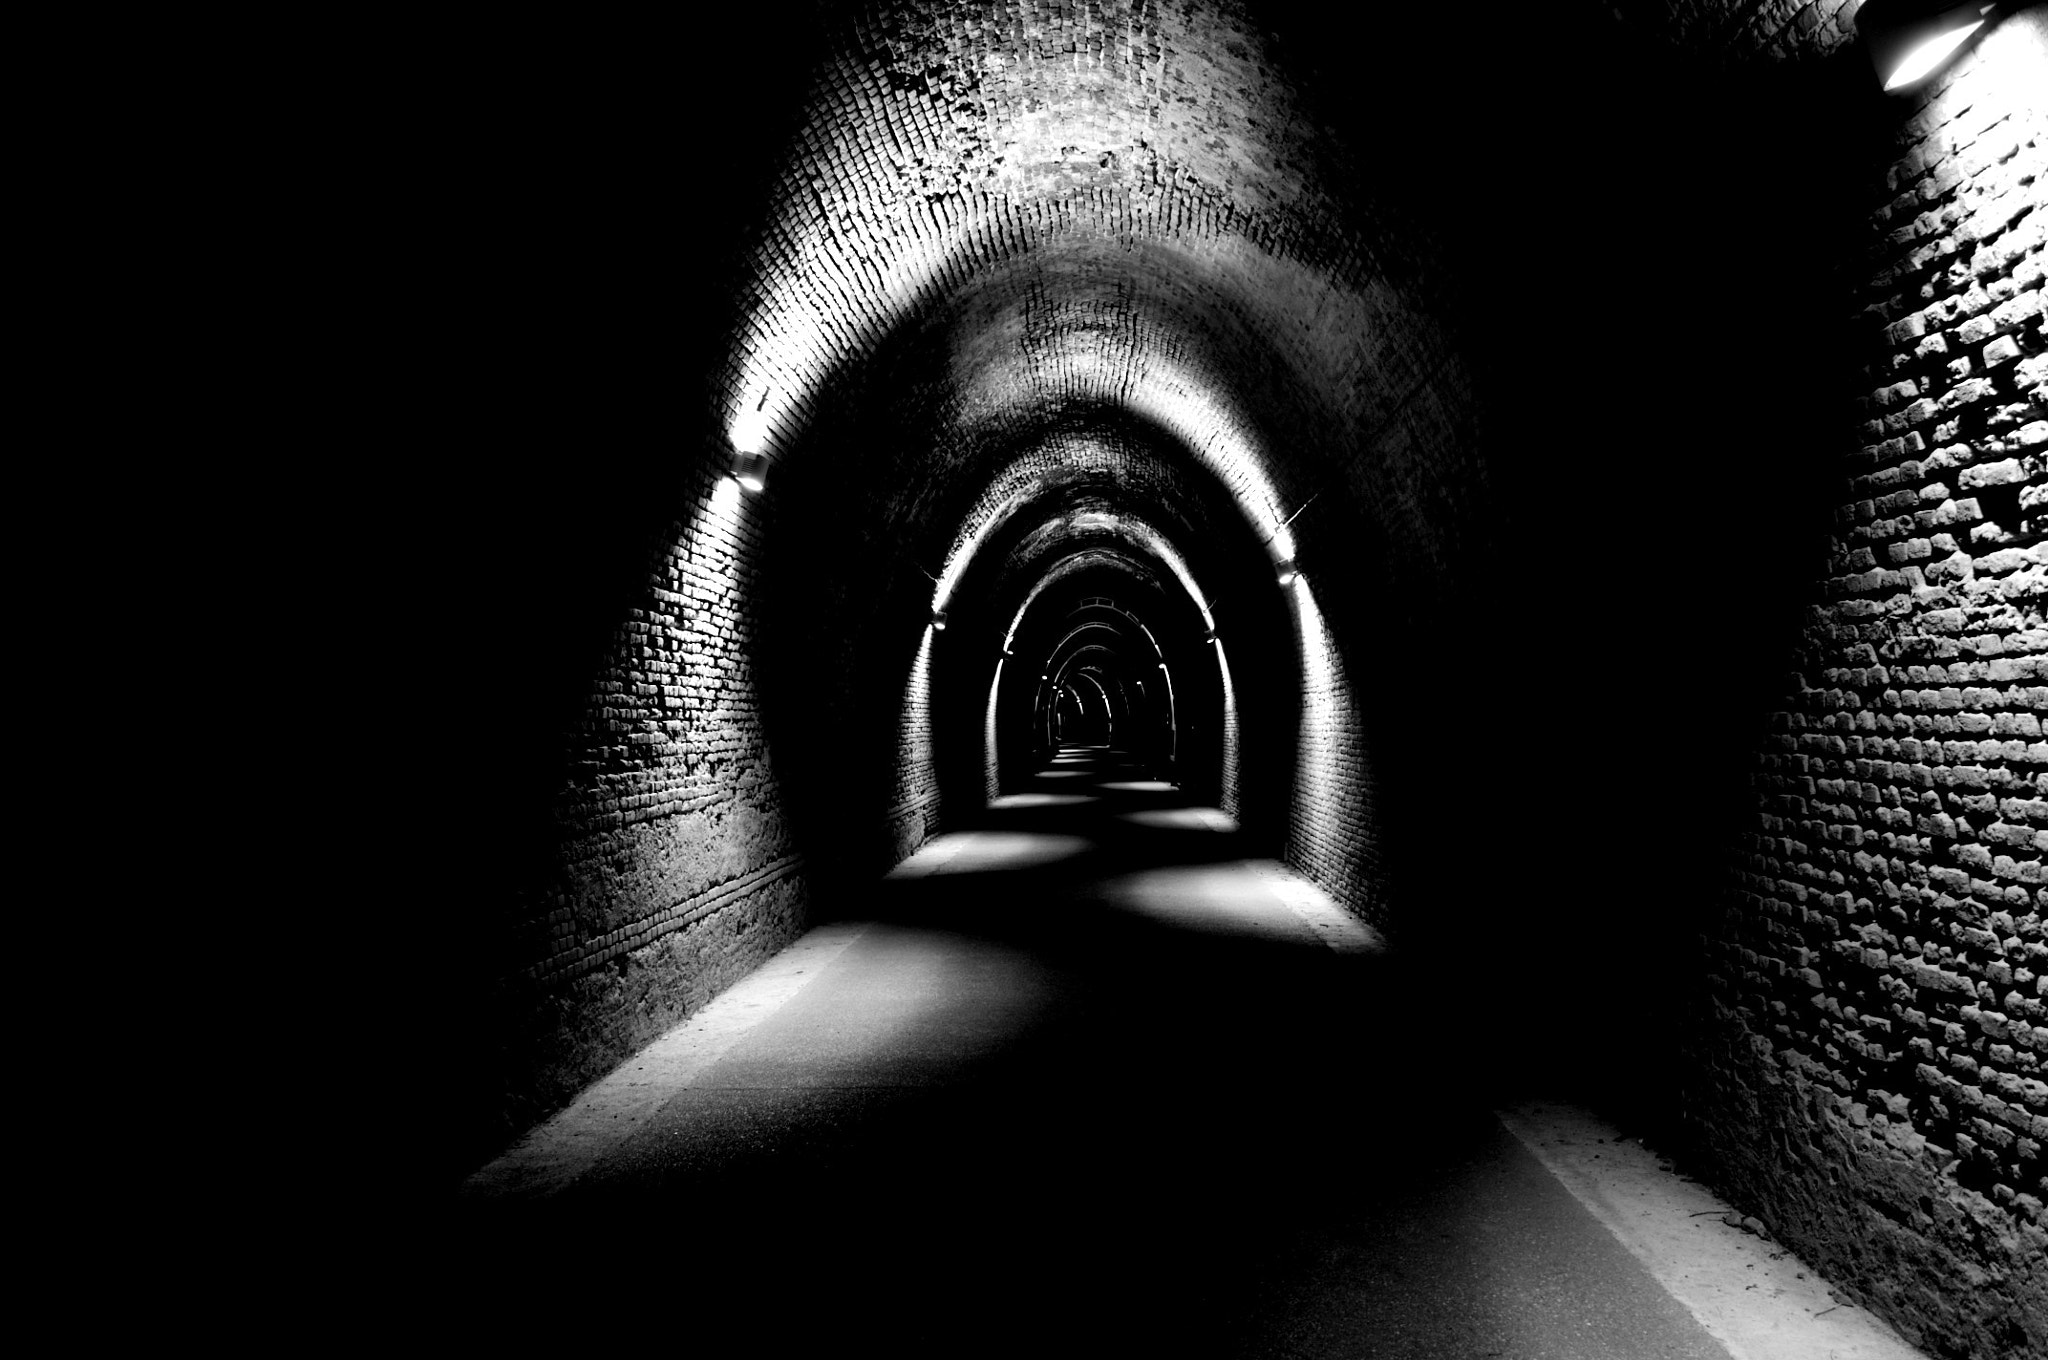 Photograph The Black Tunnel by Emanuele Mornini on 500px